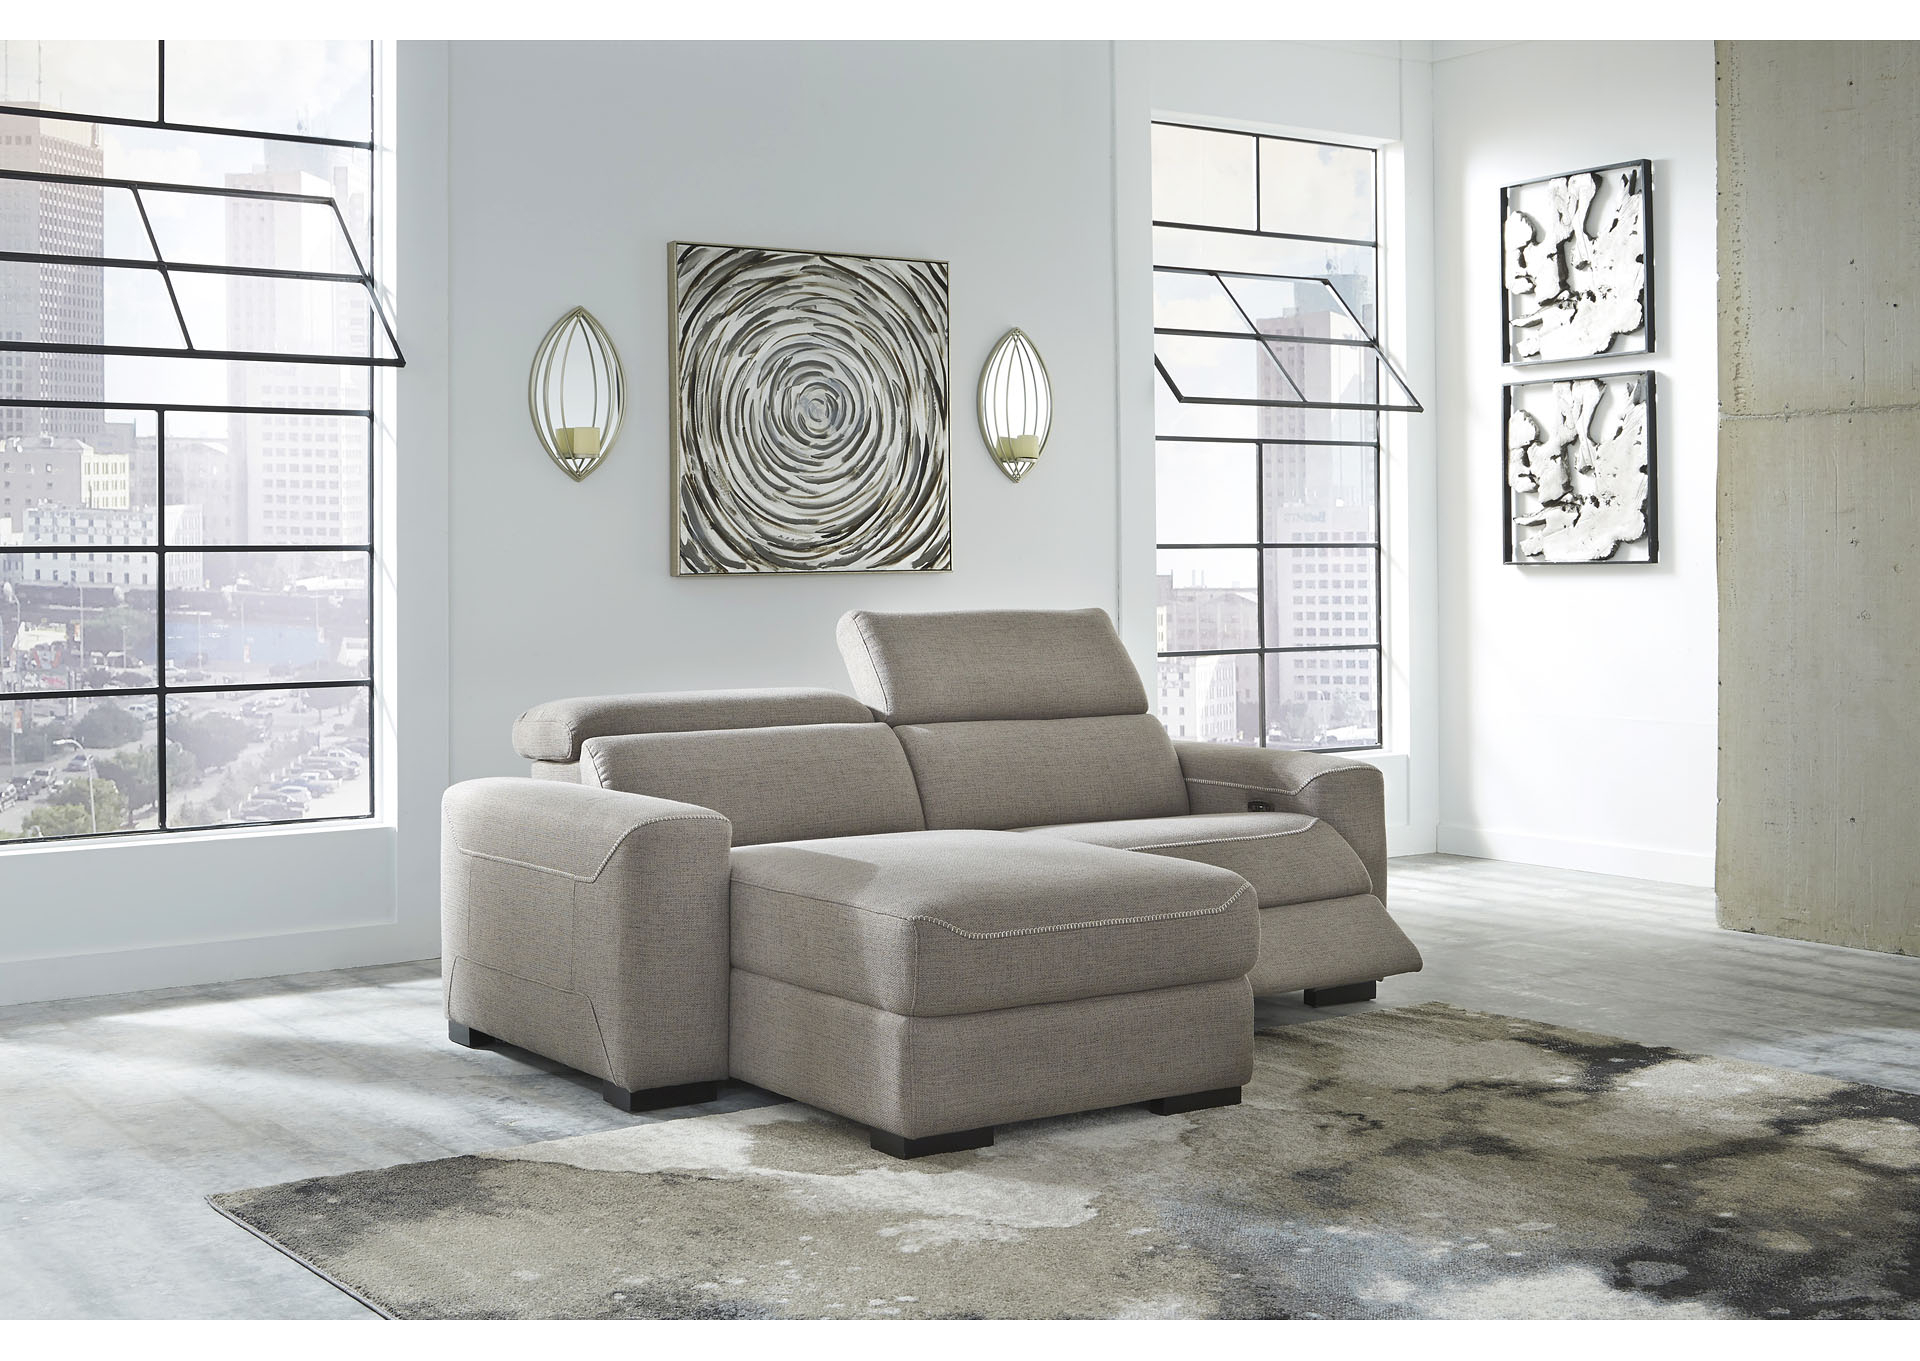 Mabton Gray Right Arm Facing Power Reclining 2 Piece For Most Up To Date 2Pc Maddox Left Arm Facing Sectional Sofas With Chaise Brown (View 13 of 25)